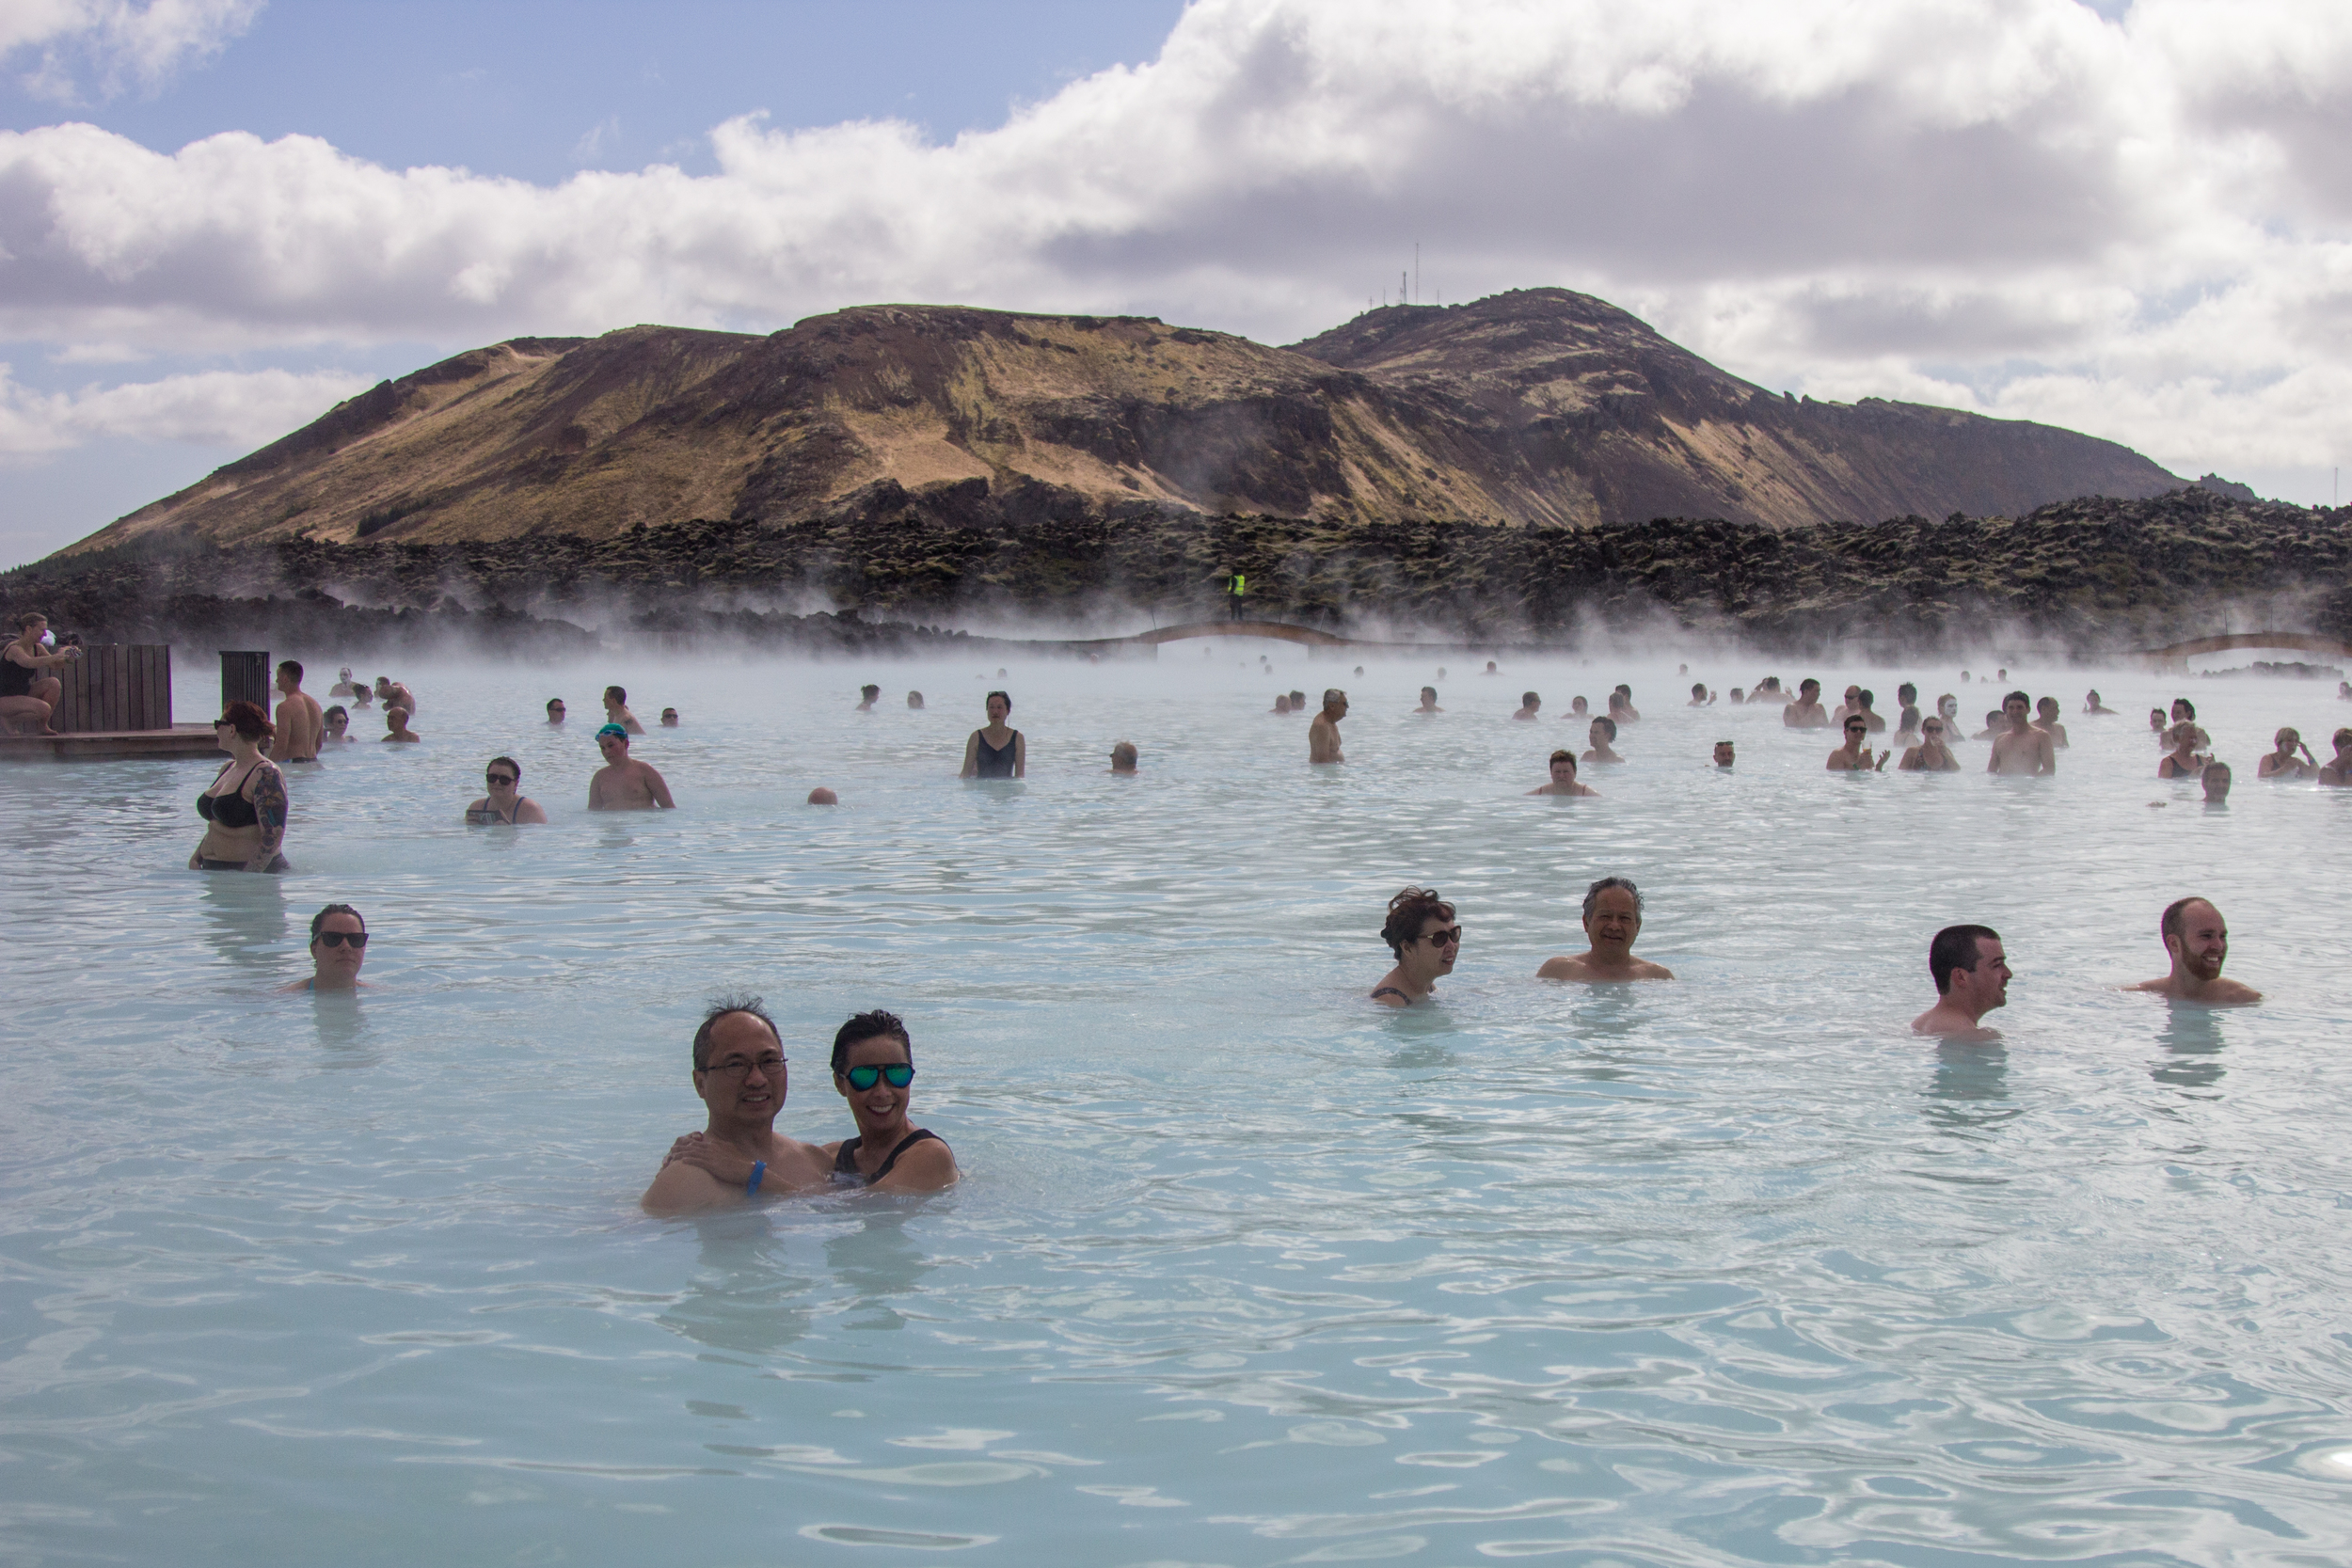 Blue Lagoon ft. my lovely parents in the bottom left.